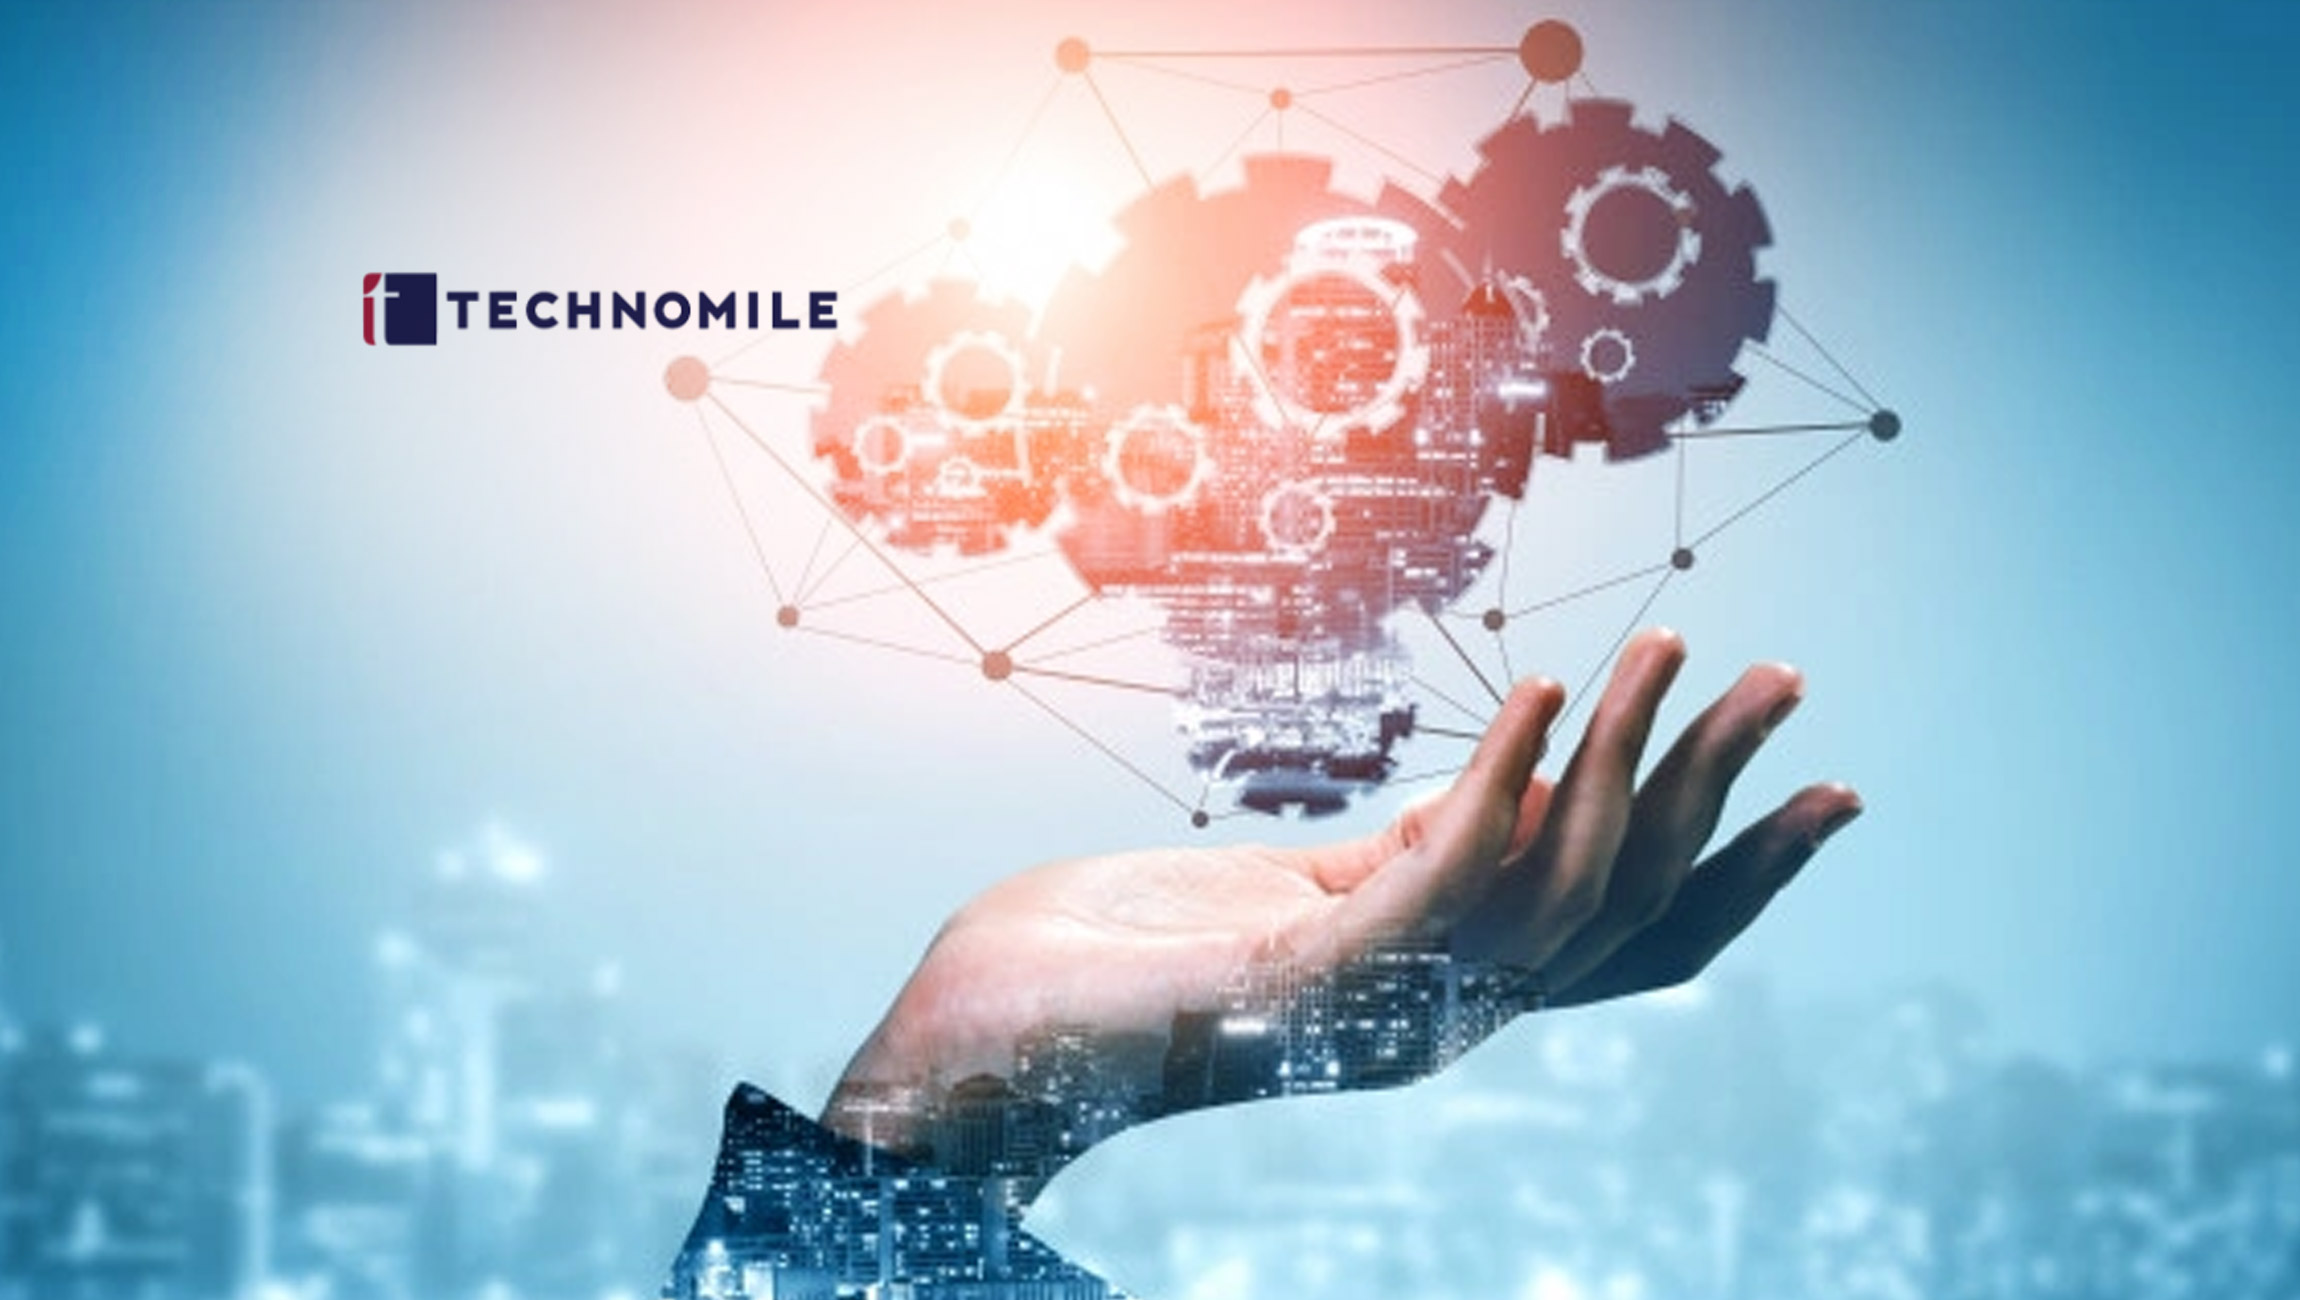 TechnoMile Reaches Stride In 2020 and is Positioned For Continued Innovation In 2021